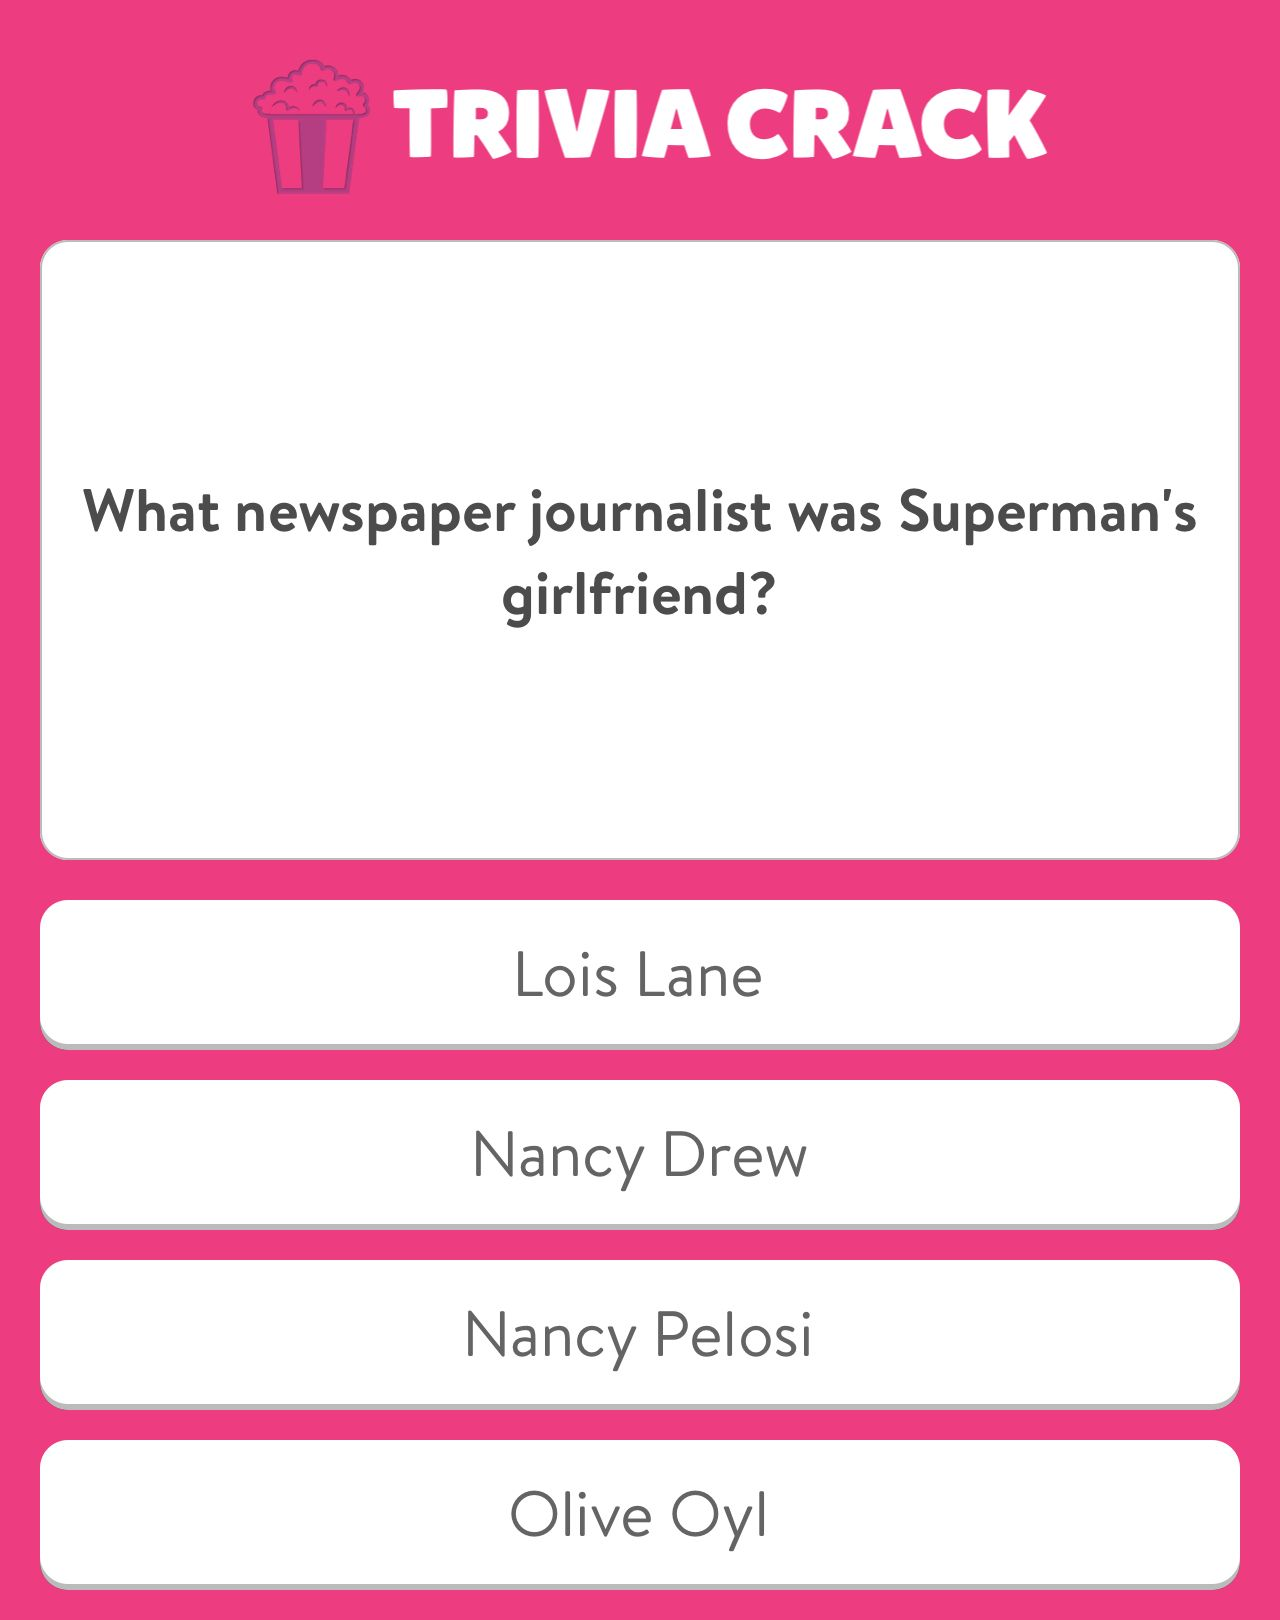 I just answered this question on Trivia Crack | FUNNY PICS